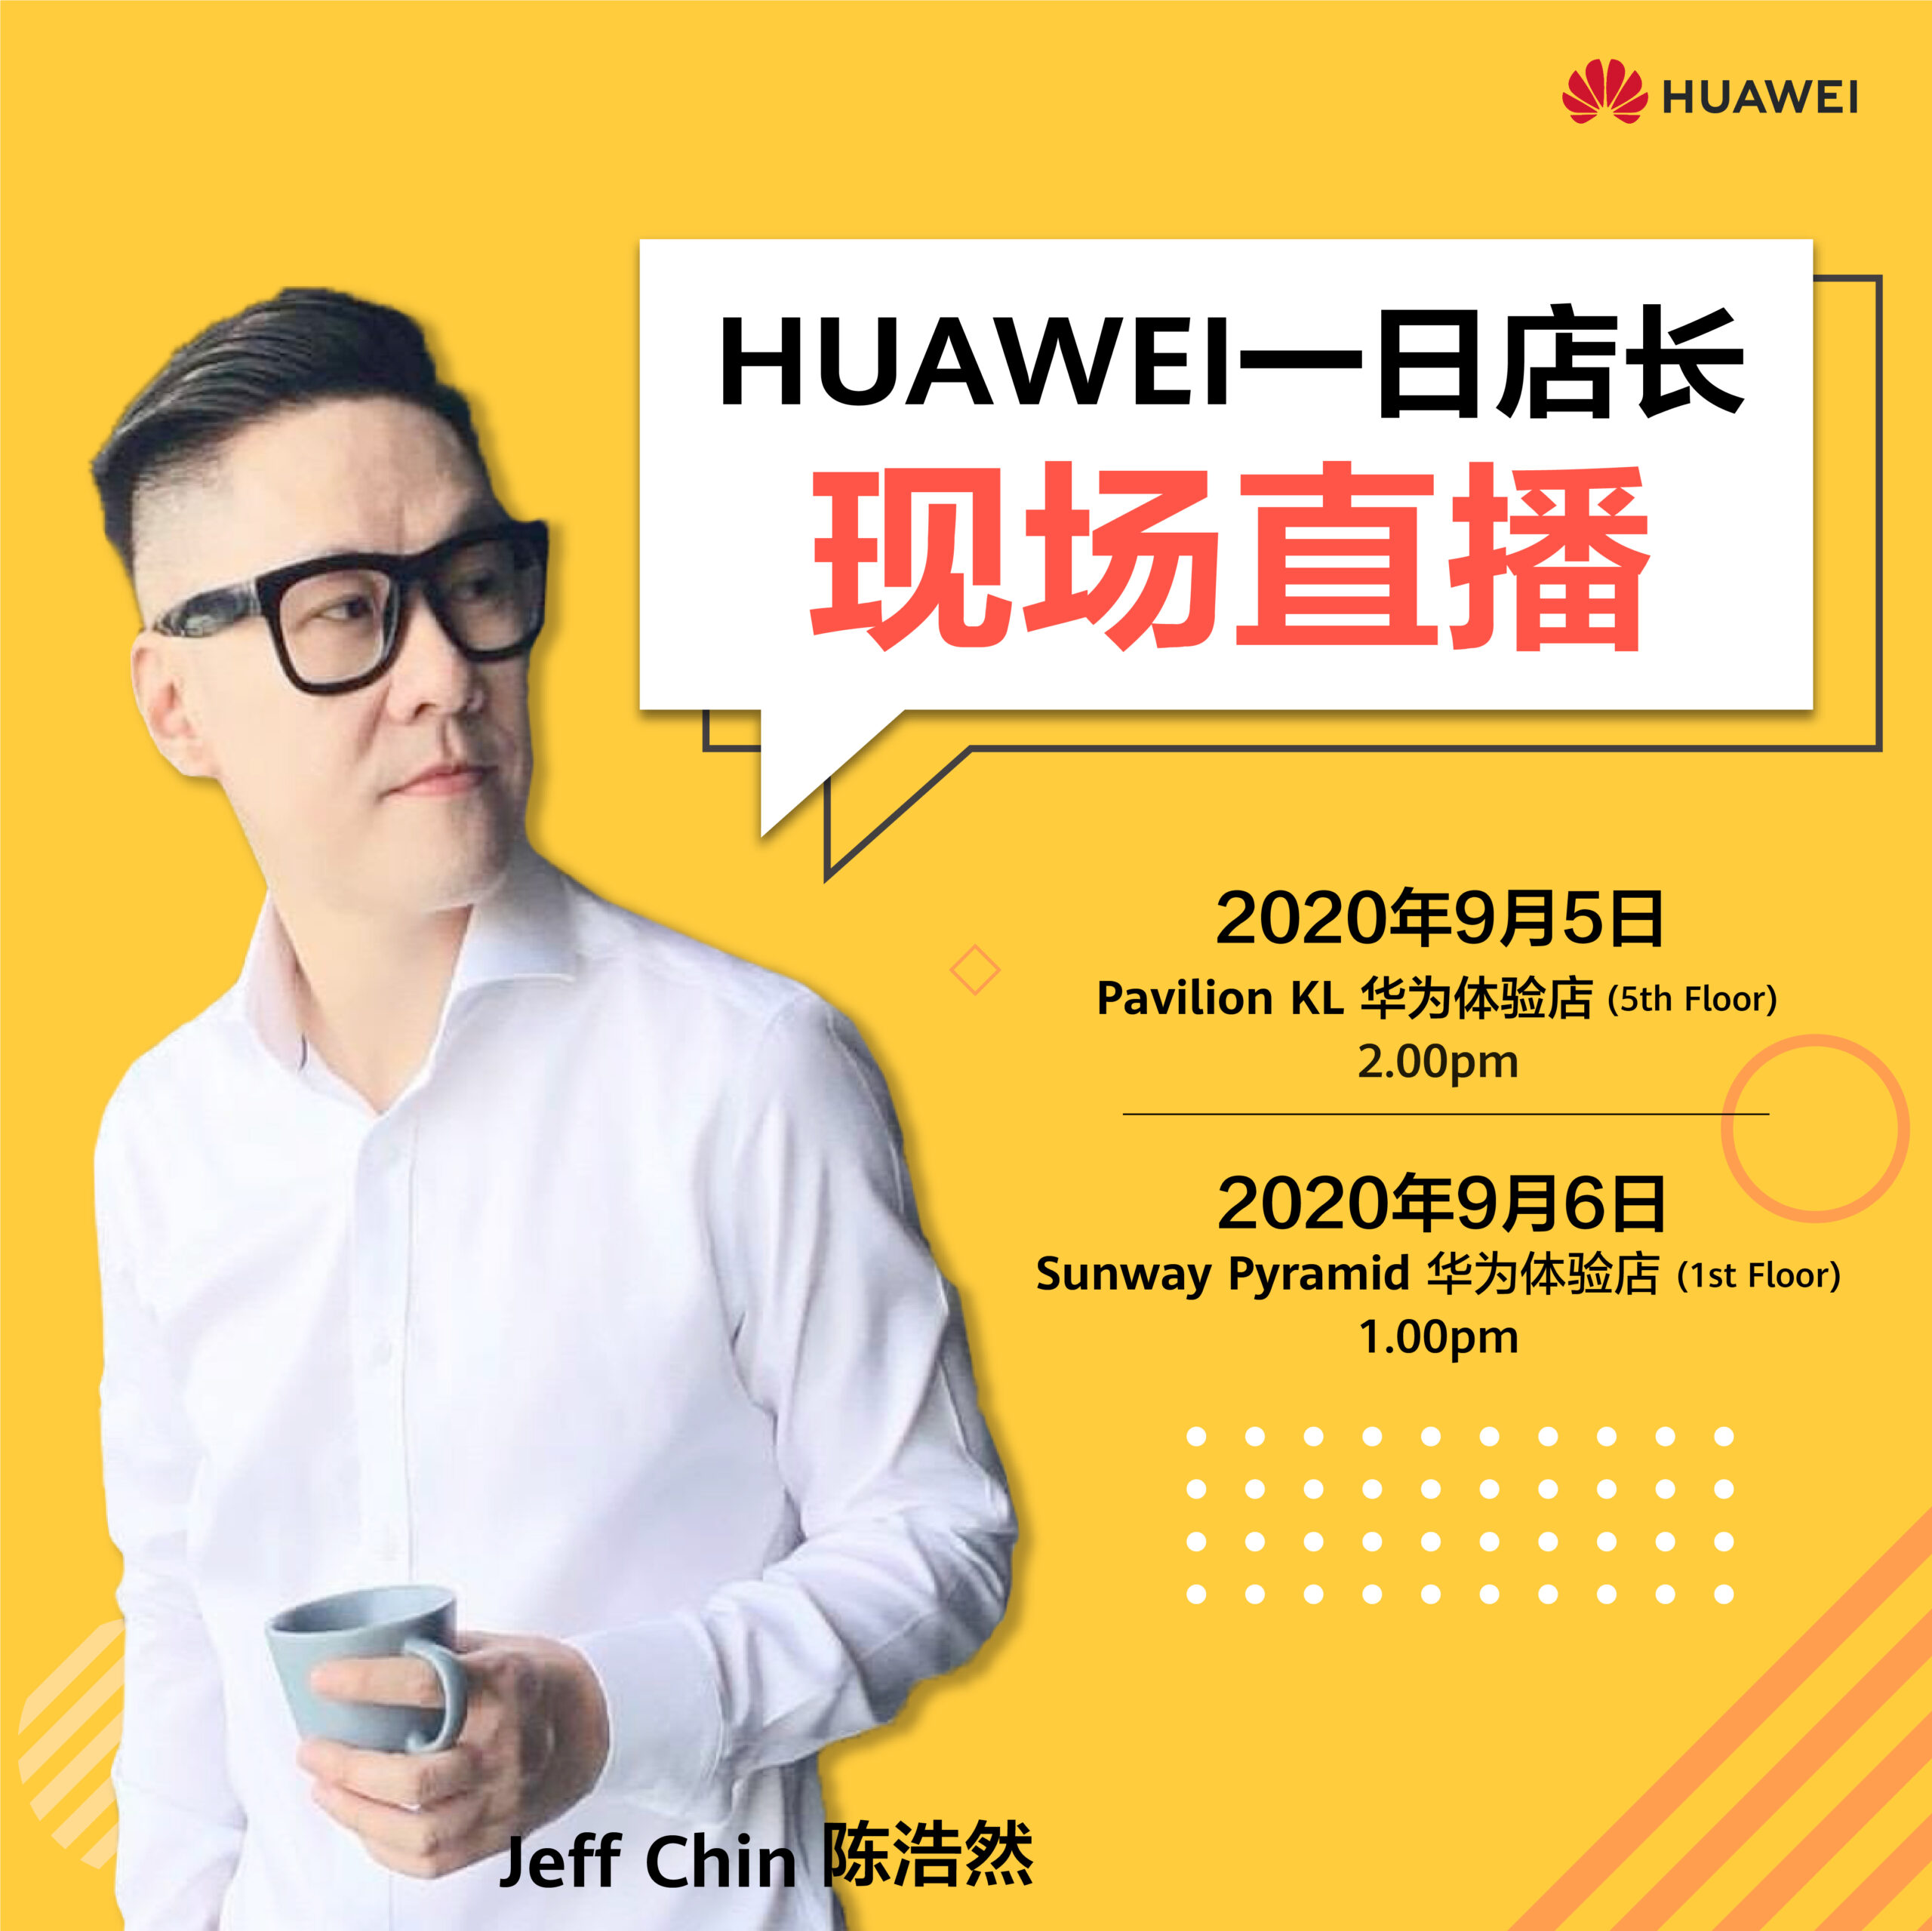 """Huawei's """"Store Manager For A Day"""" Campaign Gets Influencers To Help You Make The Most Out Of Your Huawei Devices 6"""